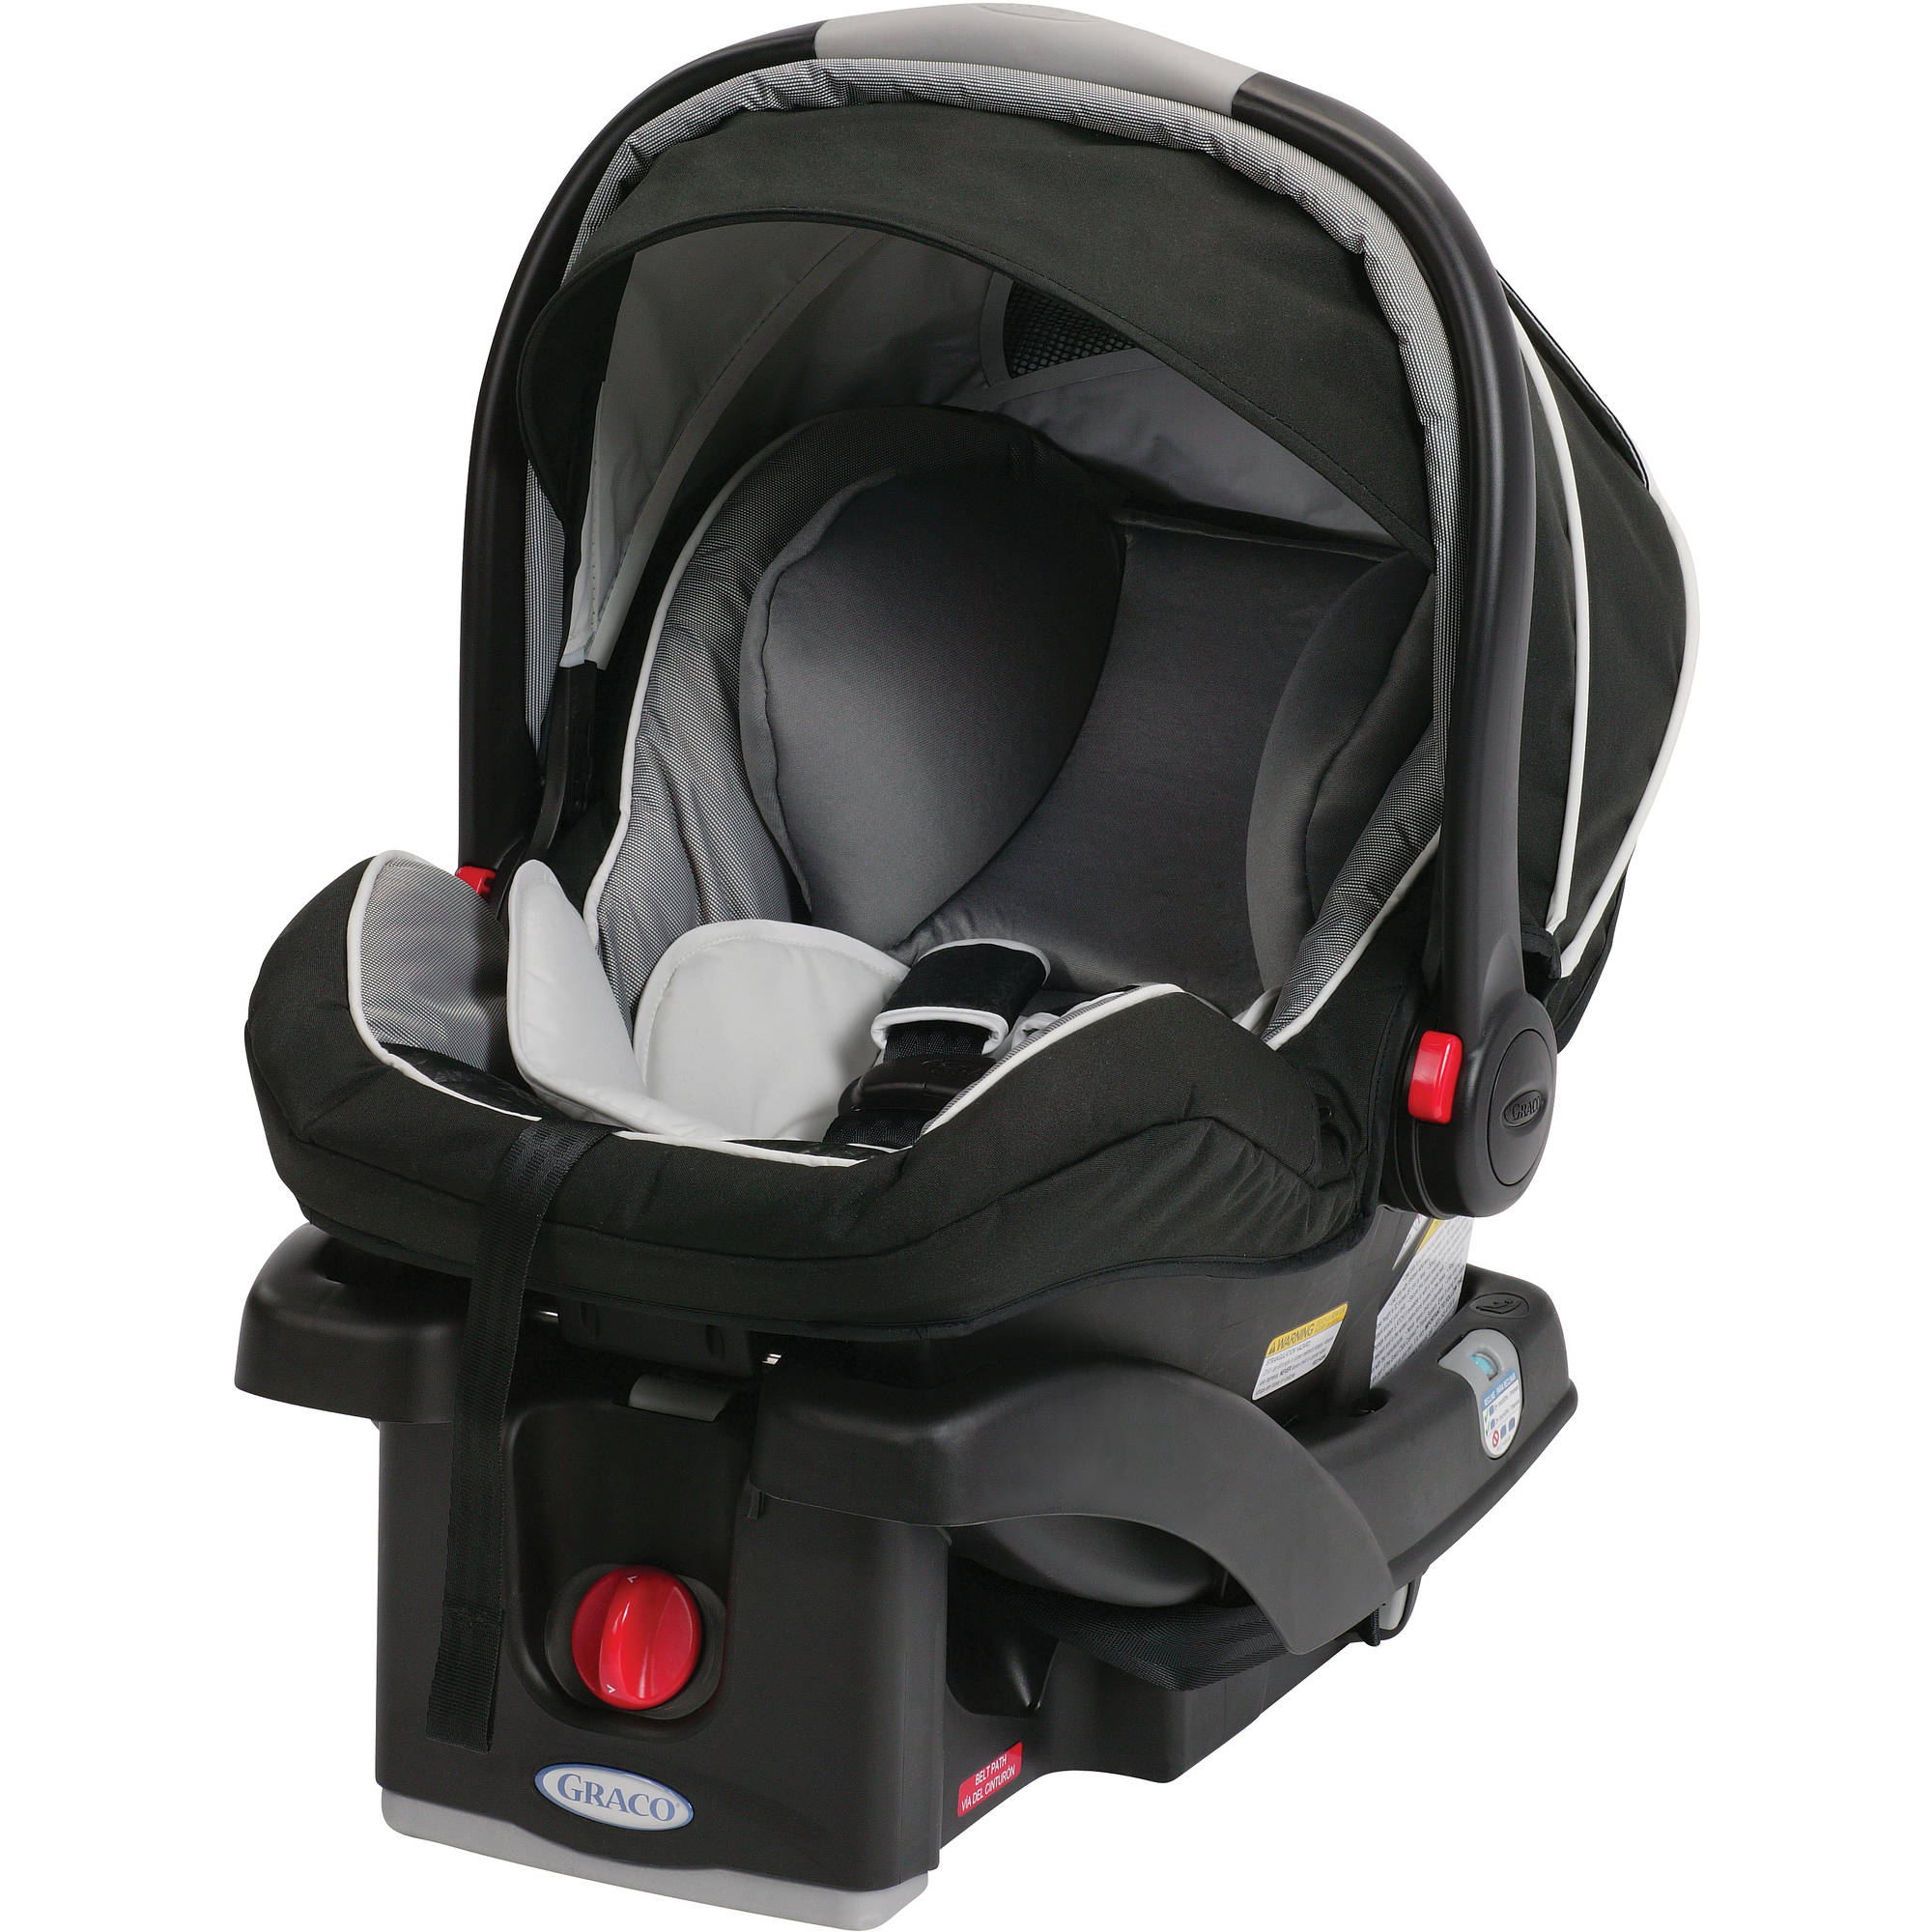 Graco SnugRide Click Connect 35 LX Infant Car Seat, Harris